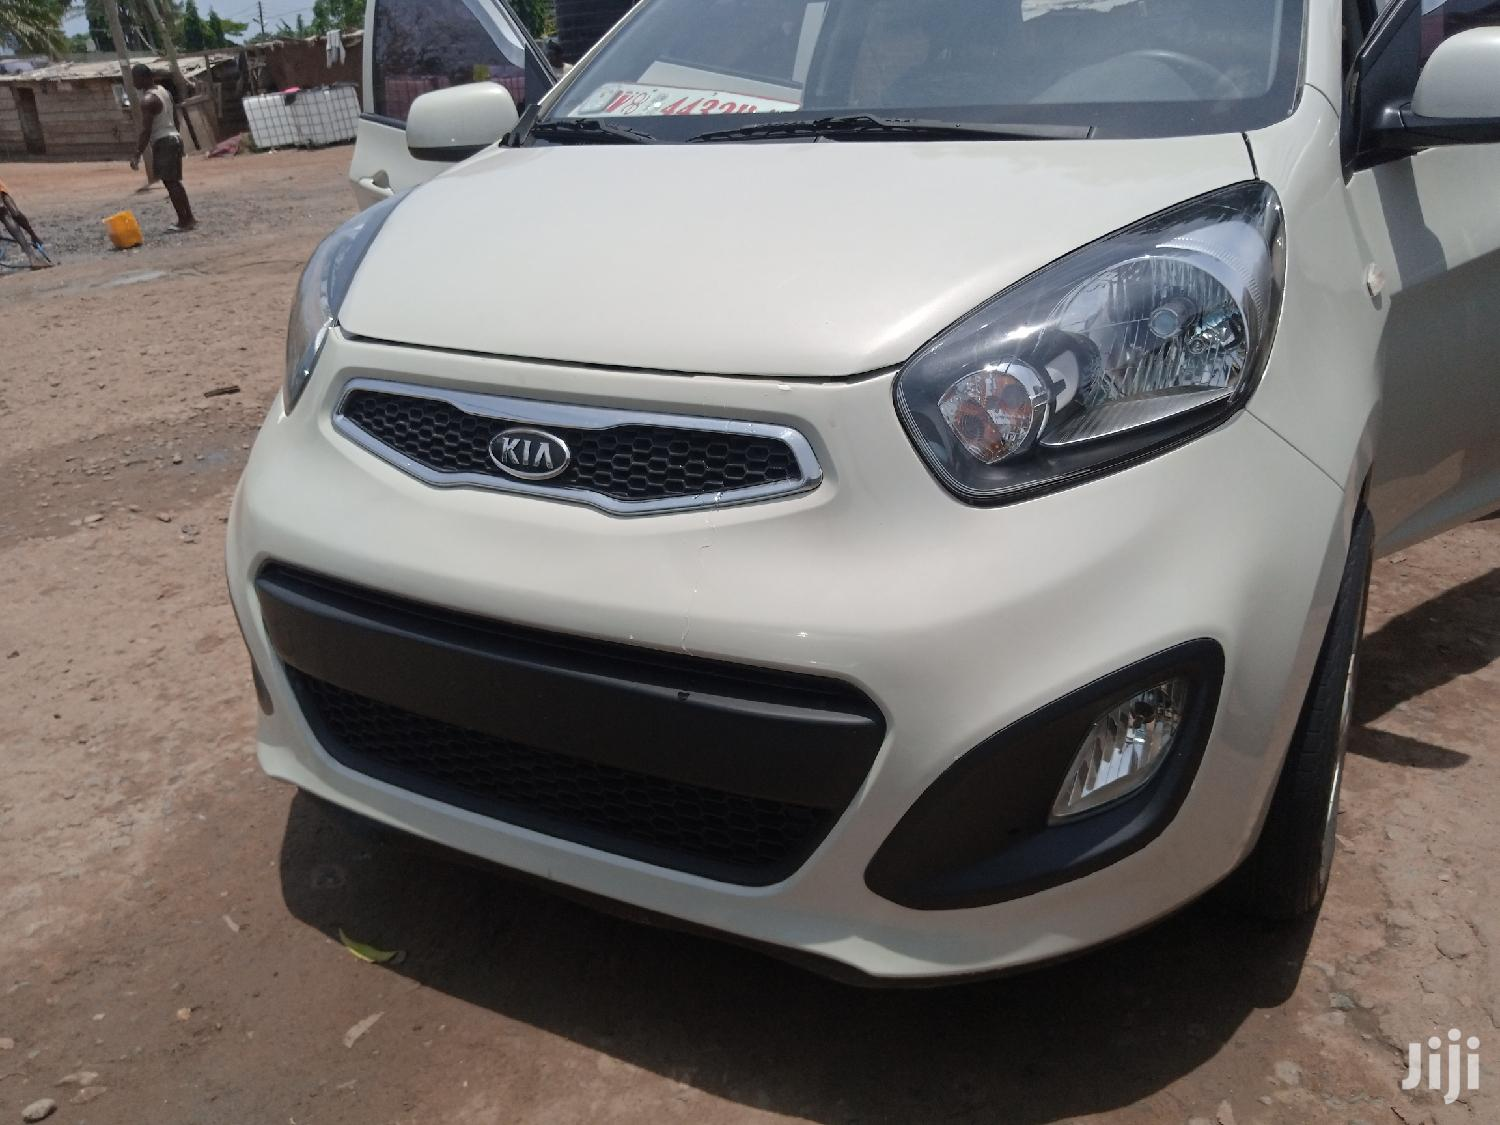 Kia Picanto 2012 1.1 EX Automatic Gold   Cars for sale in Nungua East, Greater Accra, Ghana